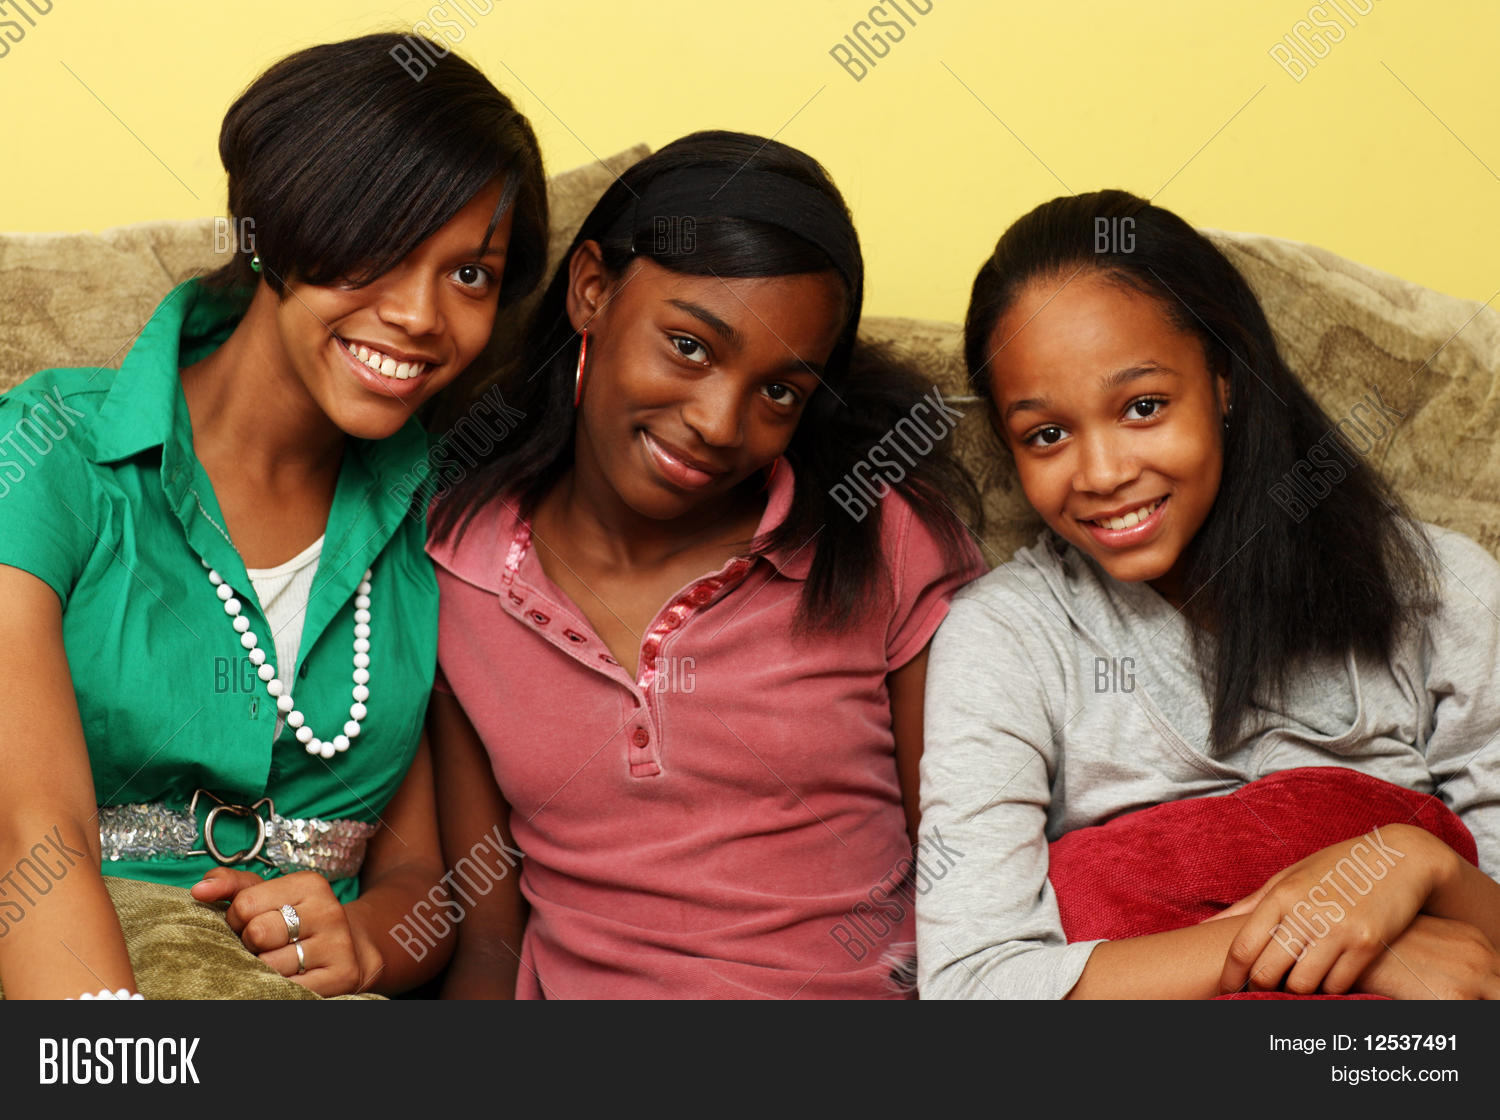 African American Teens Thursday - Other - Hot Photos-7992